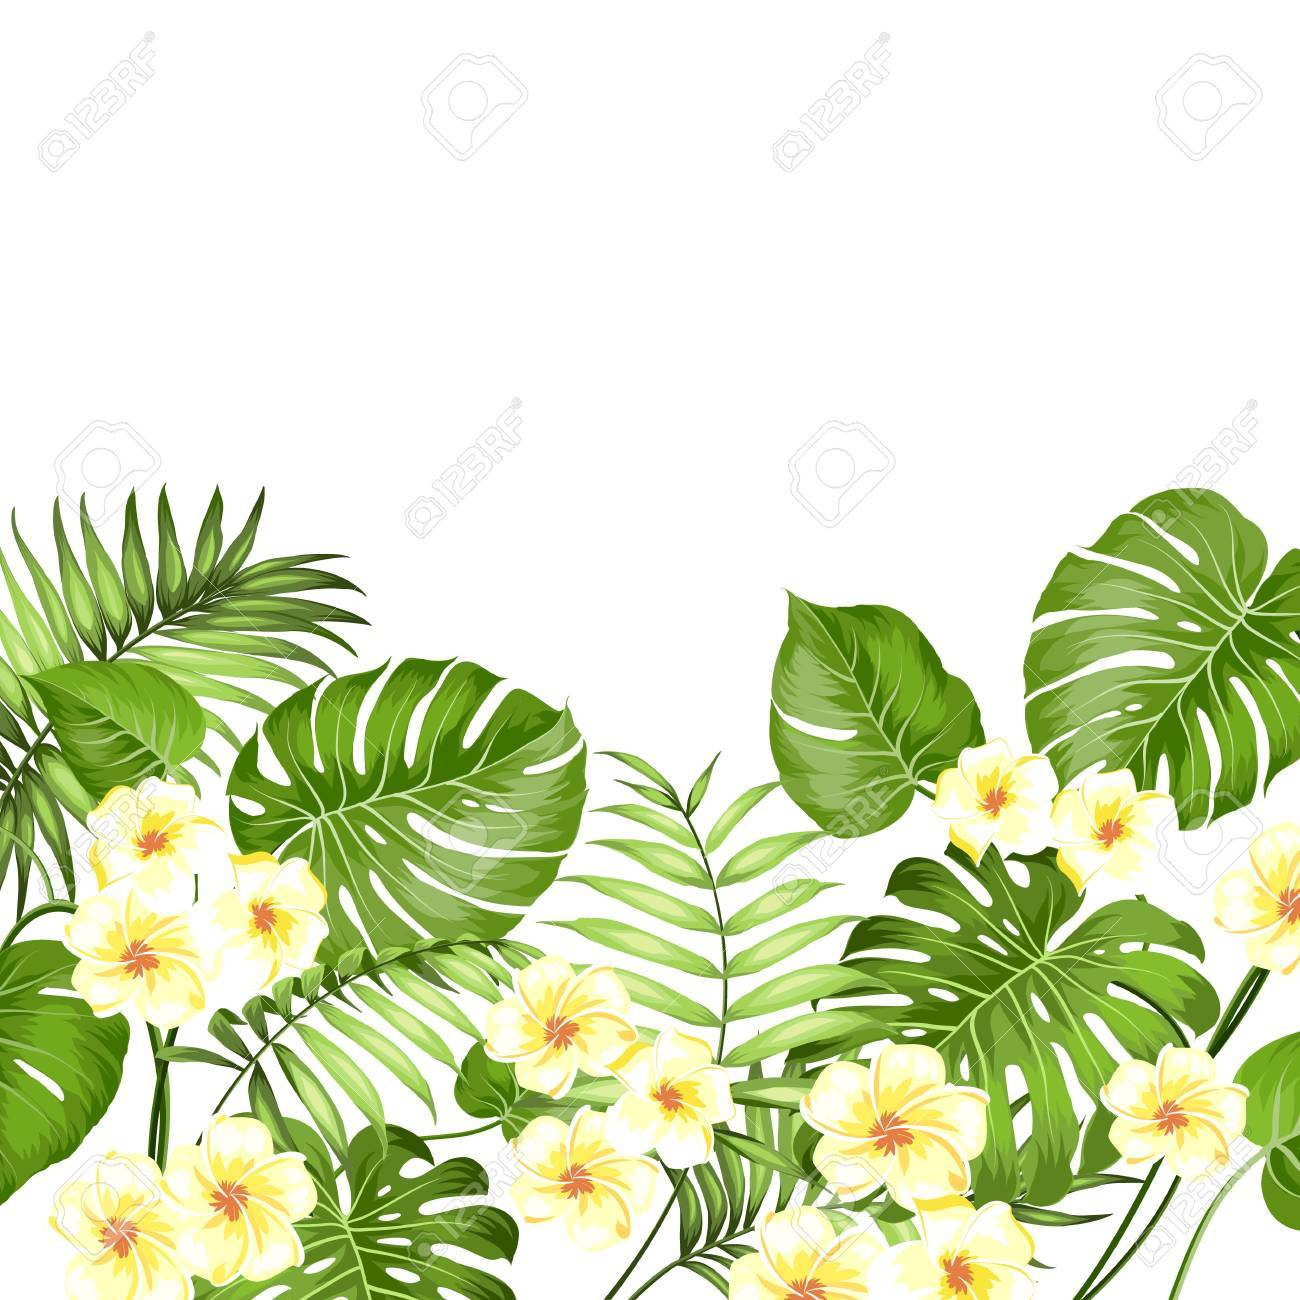 decorative tropical border horizontal line in the bottom happy holiday card with a floral garland